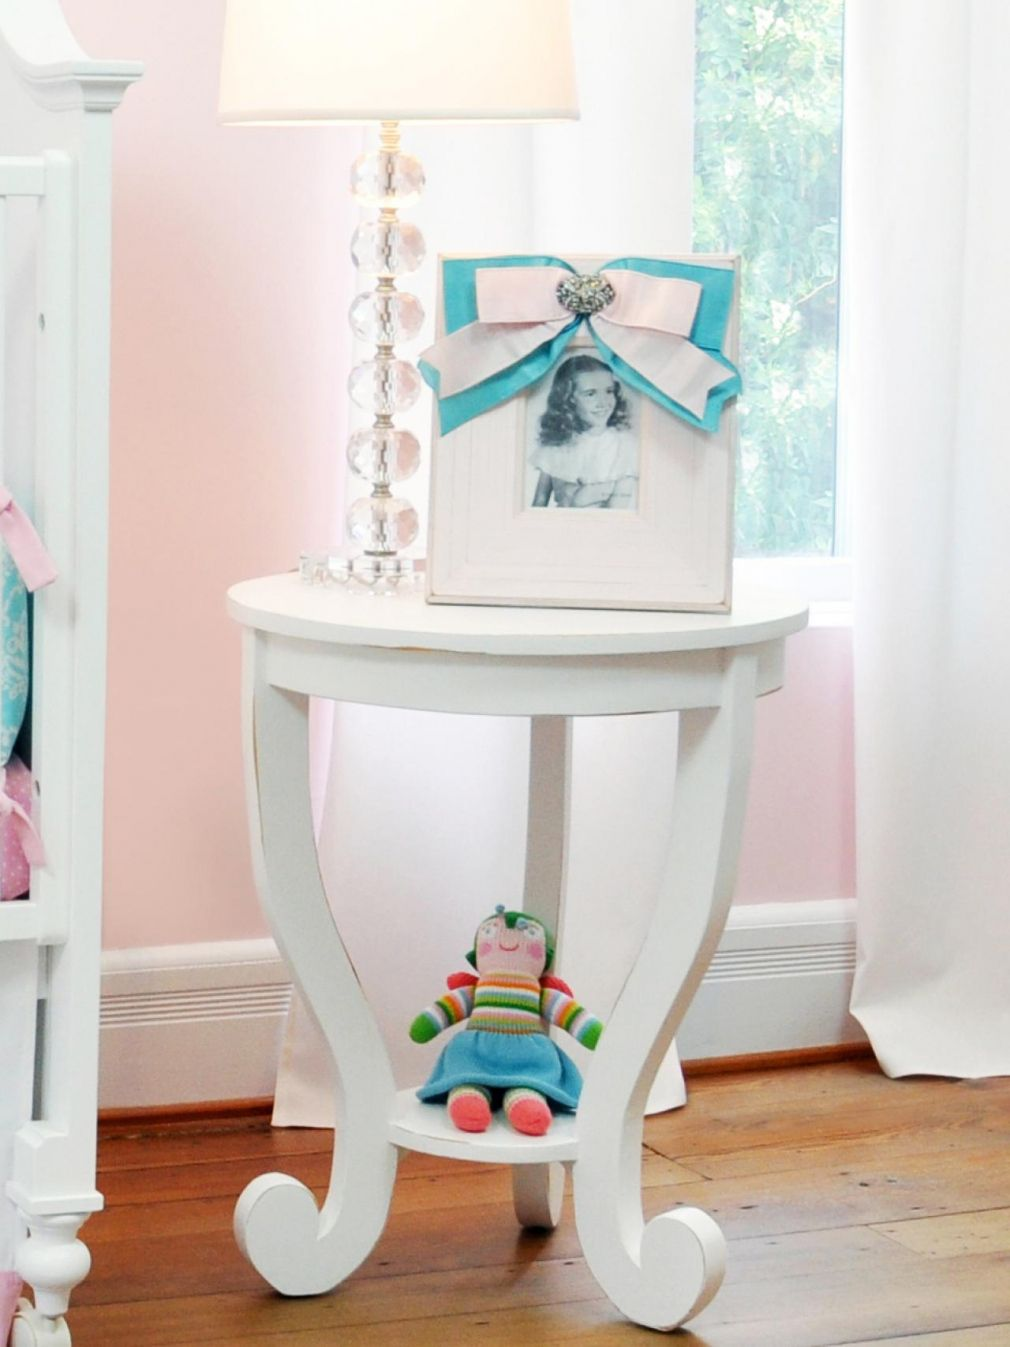 Superbe Nursery End Table   Diy Modern Furniture Check More At  Http://www.nikkitsfun.com/nursery End Table/